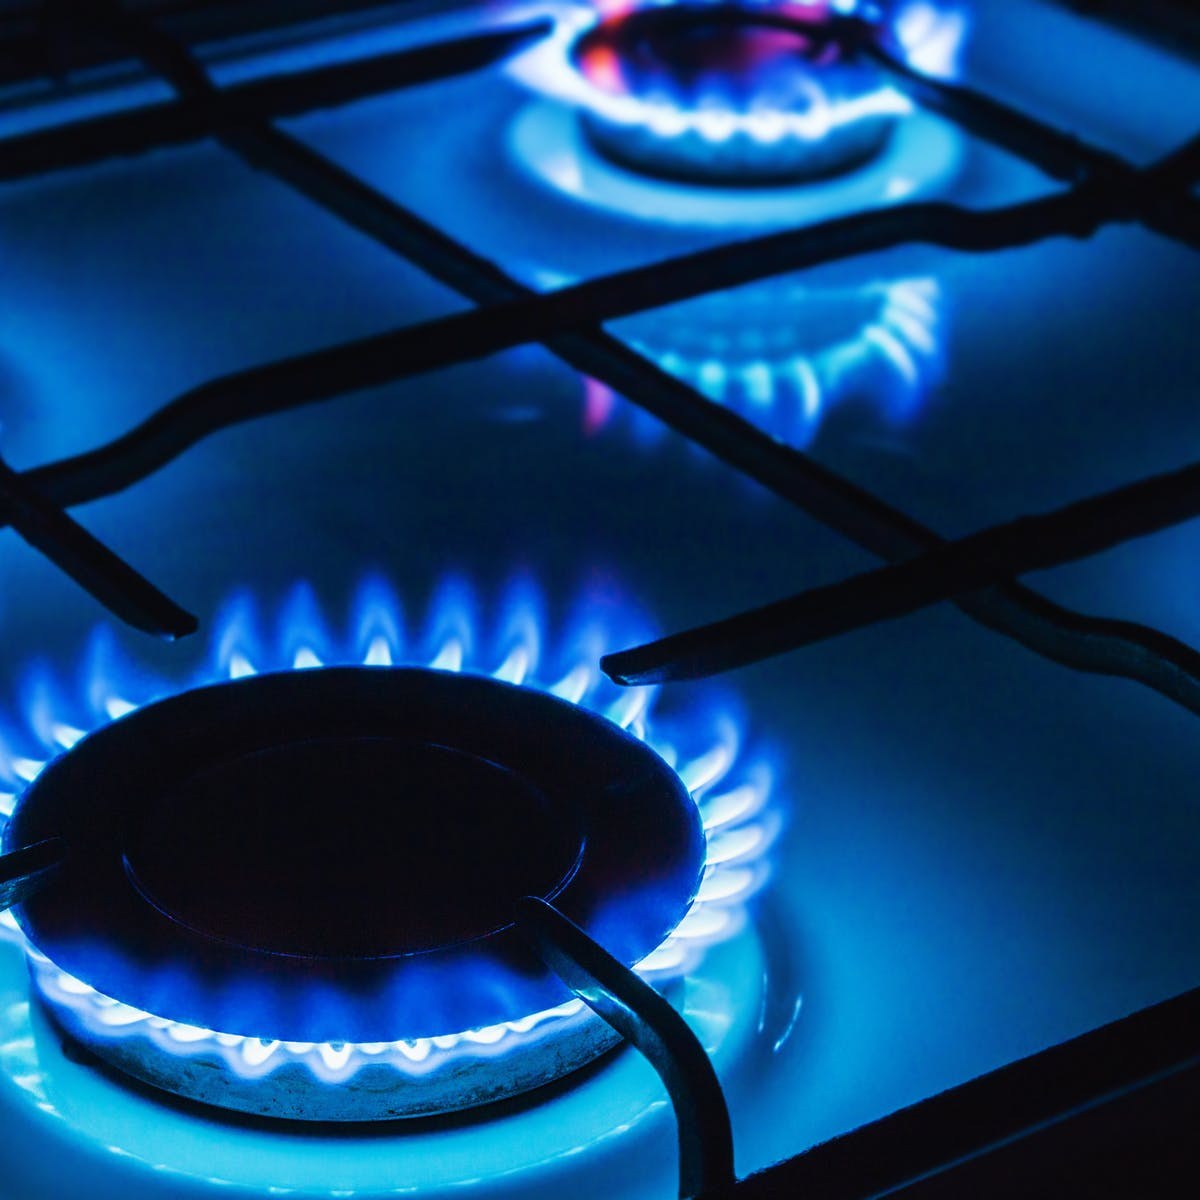 A gas stove with blue flames.